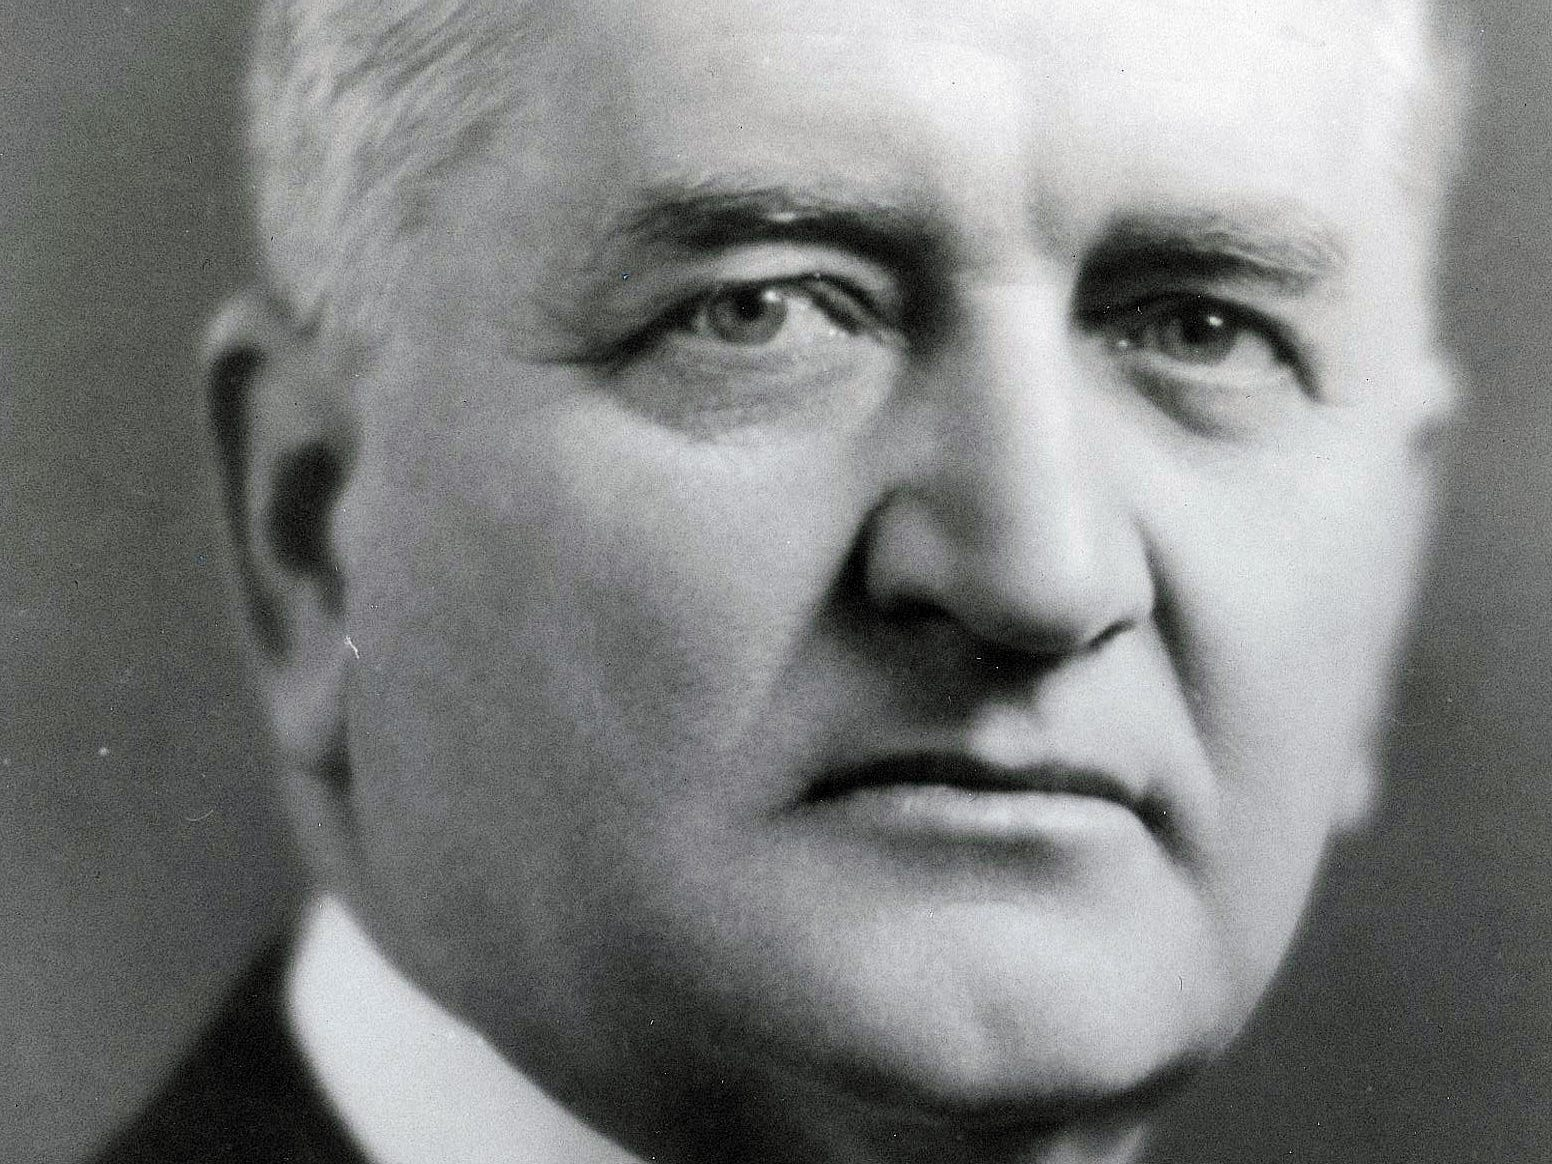 Gov. Edward Jackson, Indiana's 32nd governor who served from 1925-29, helped establish the Indiana Dunes State Park and the George Rogers Clark Memorial.